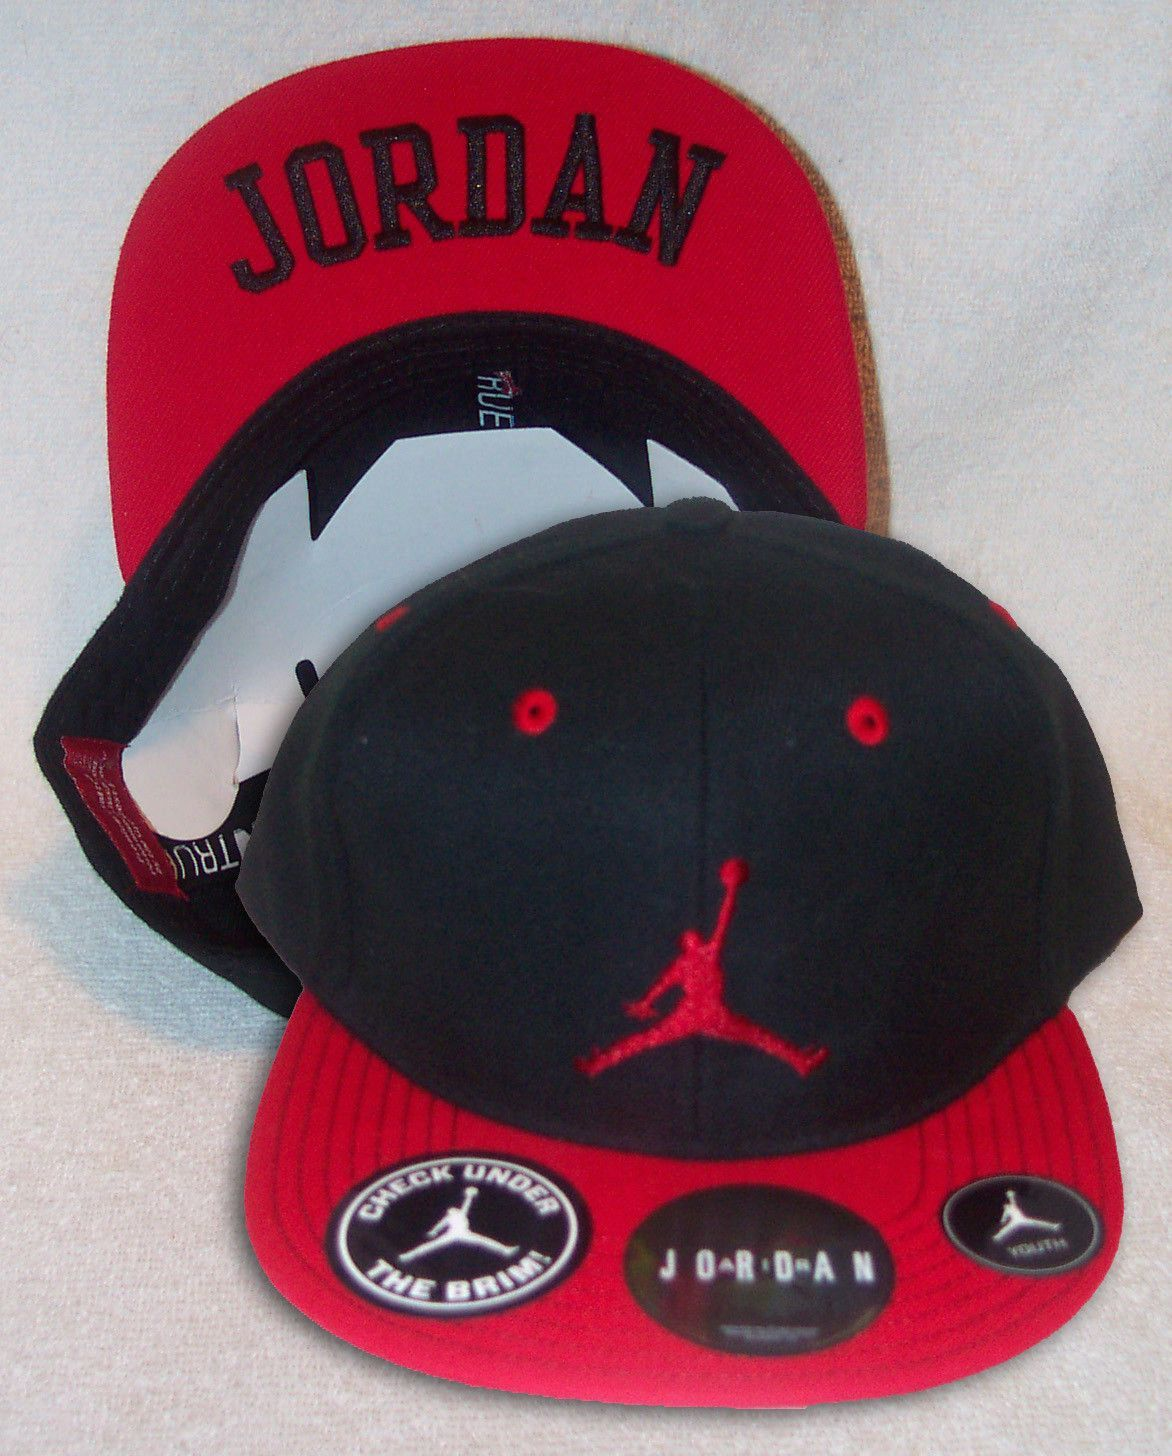 a2d9e101181ffa NIKE Air Jordan True Jumpman Youth Boys Black Red Snapback Hat ...